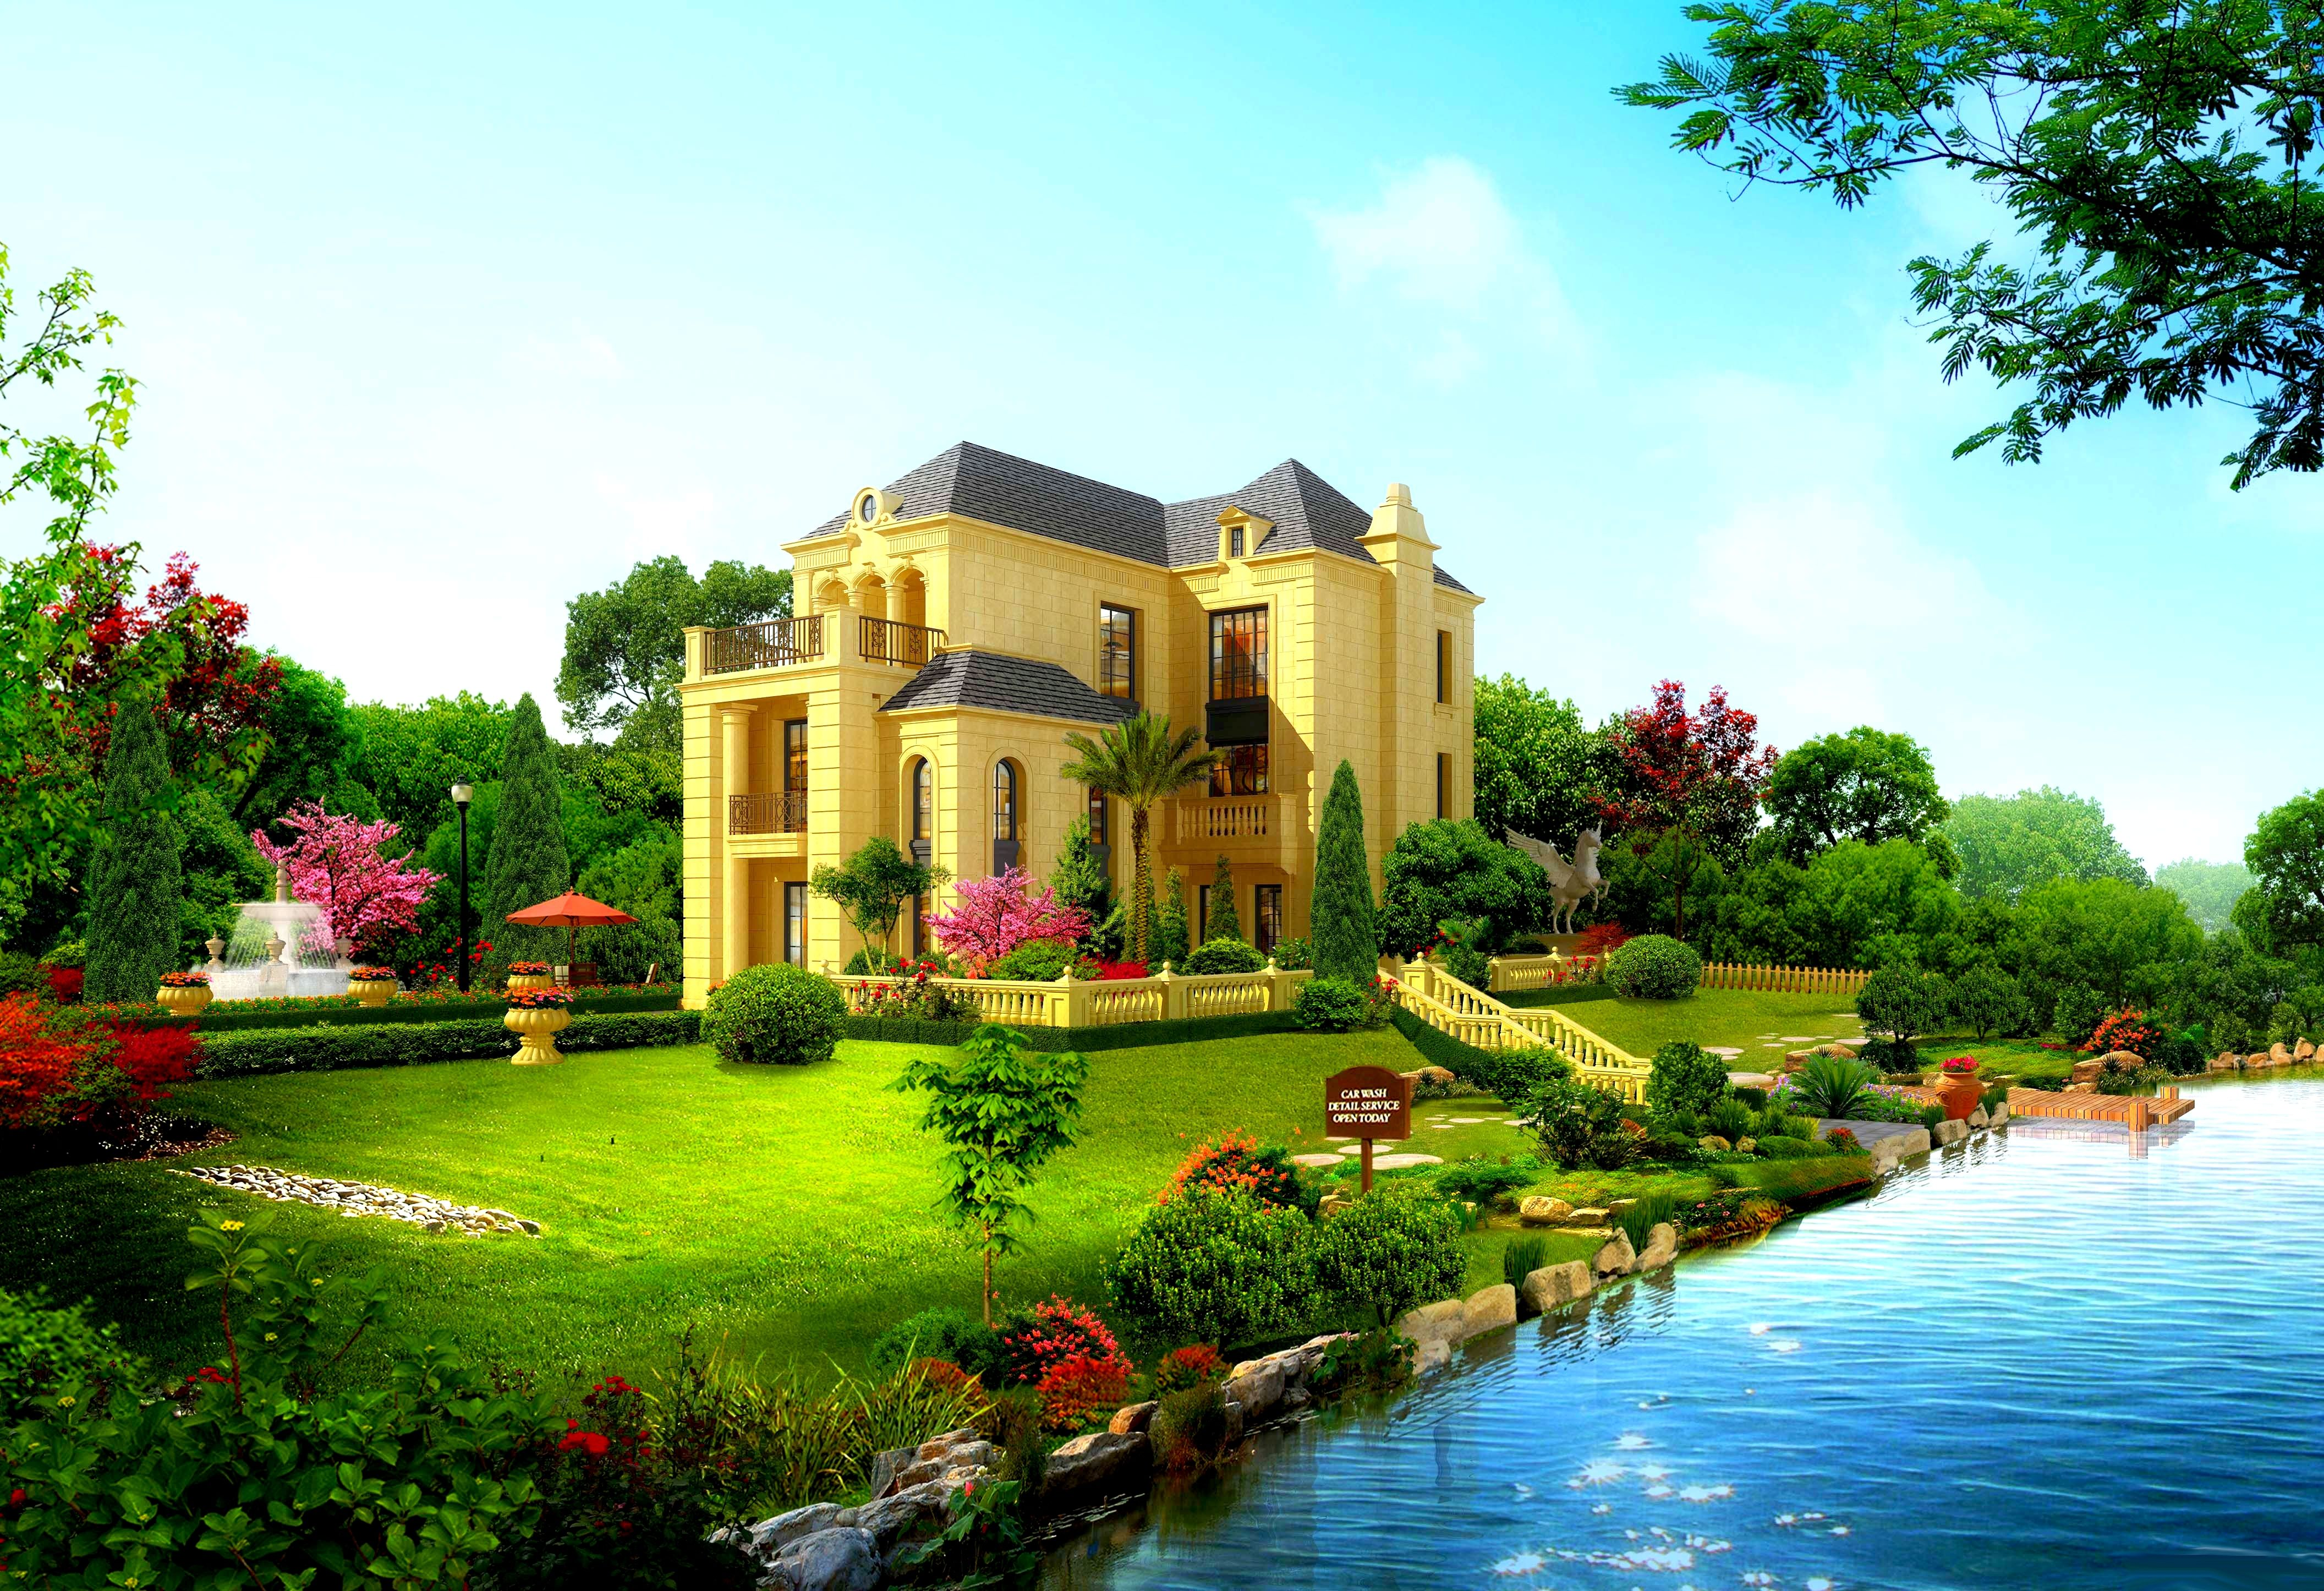 Beautiful House With A GardenBest Beautiful house2017